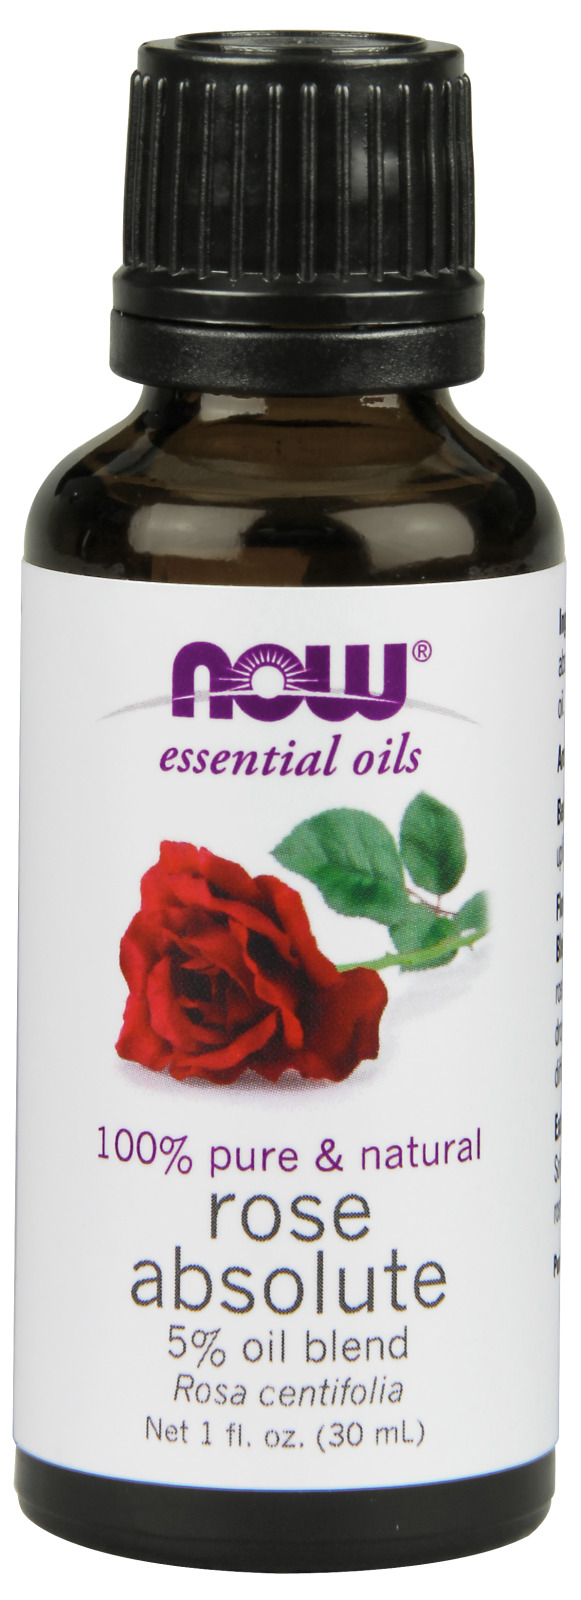 Rose Absolute Oil Blend 1 fl oz (30 ml) by NOW